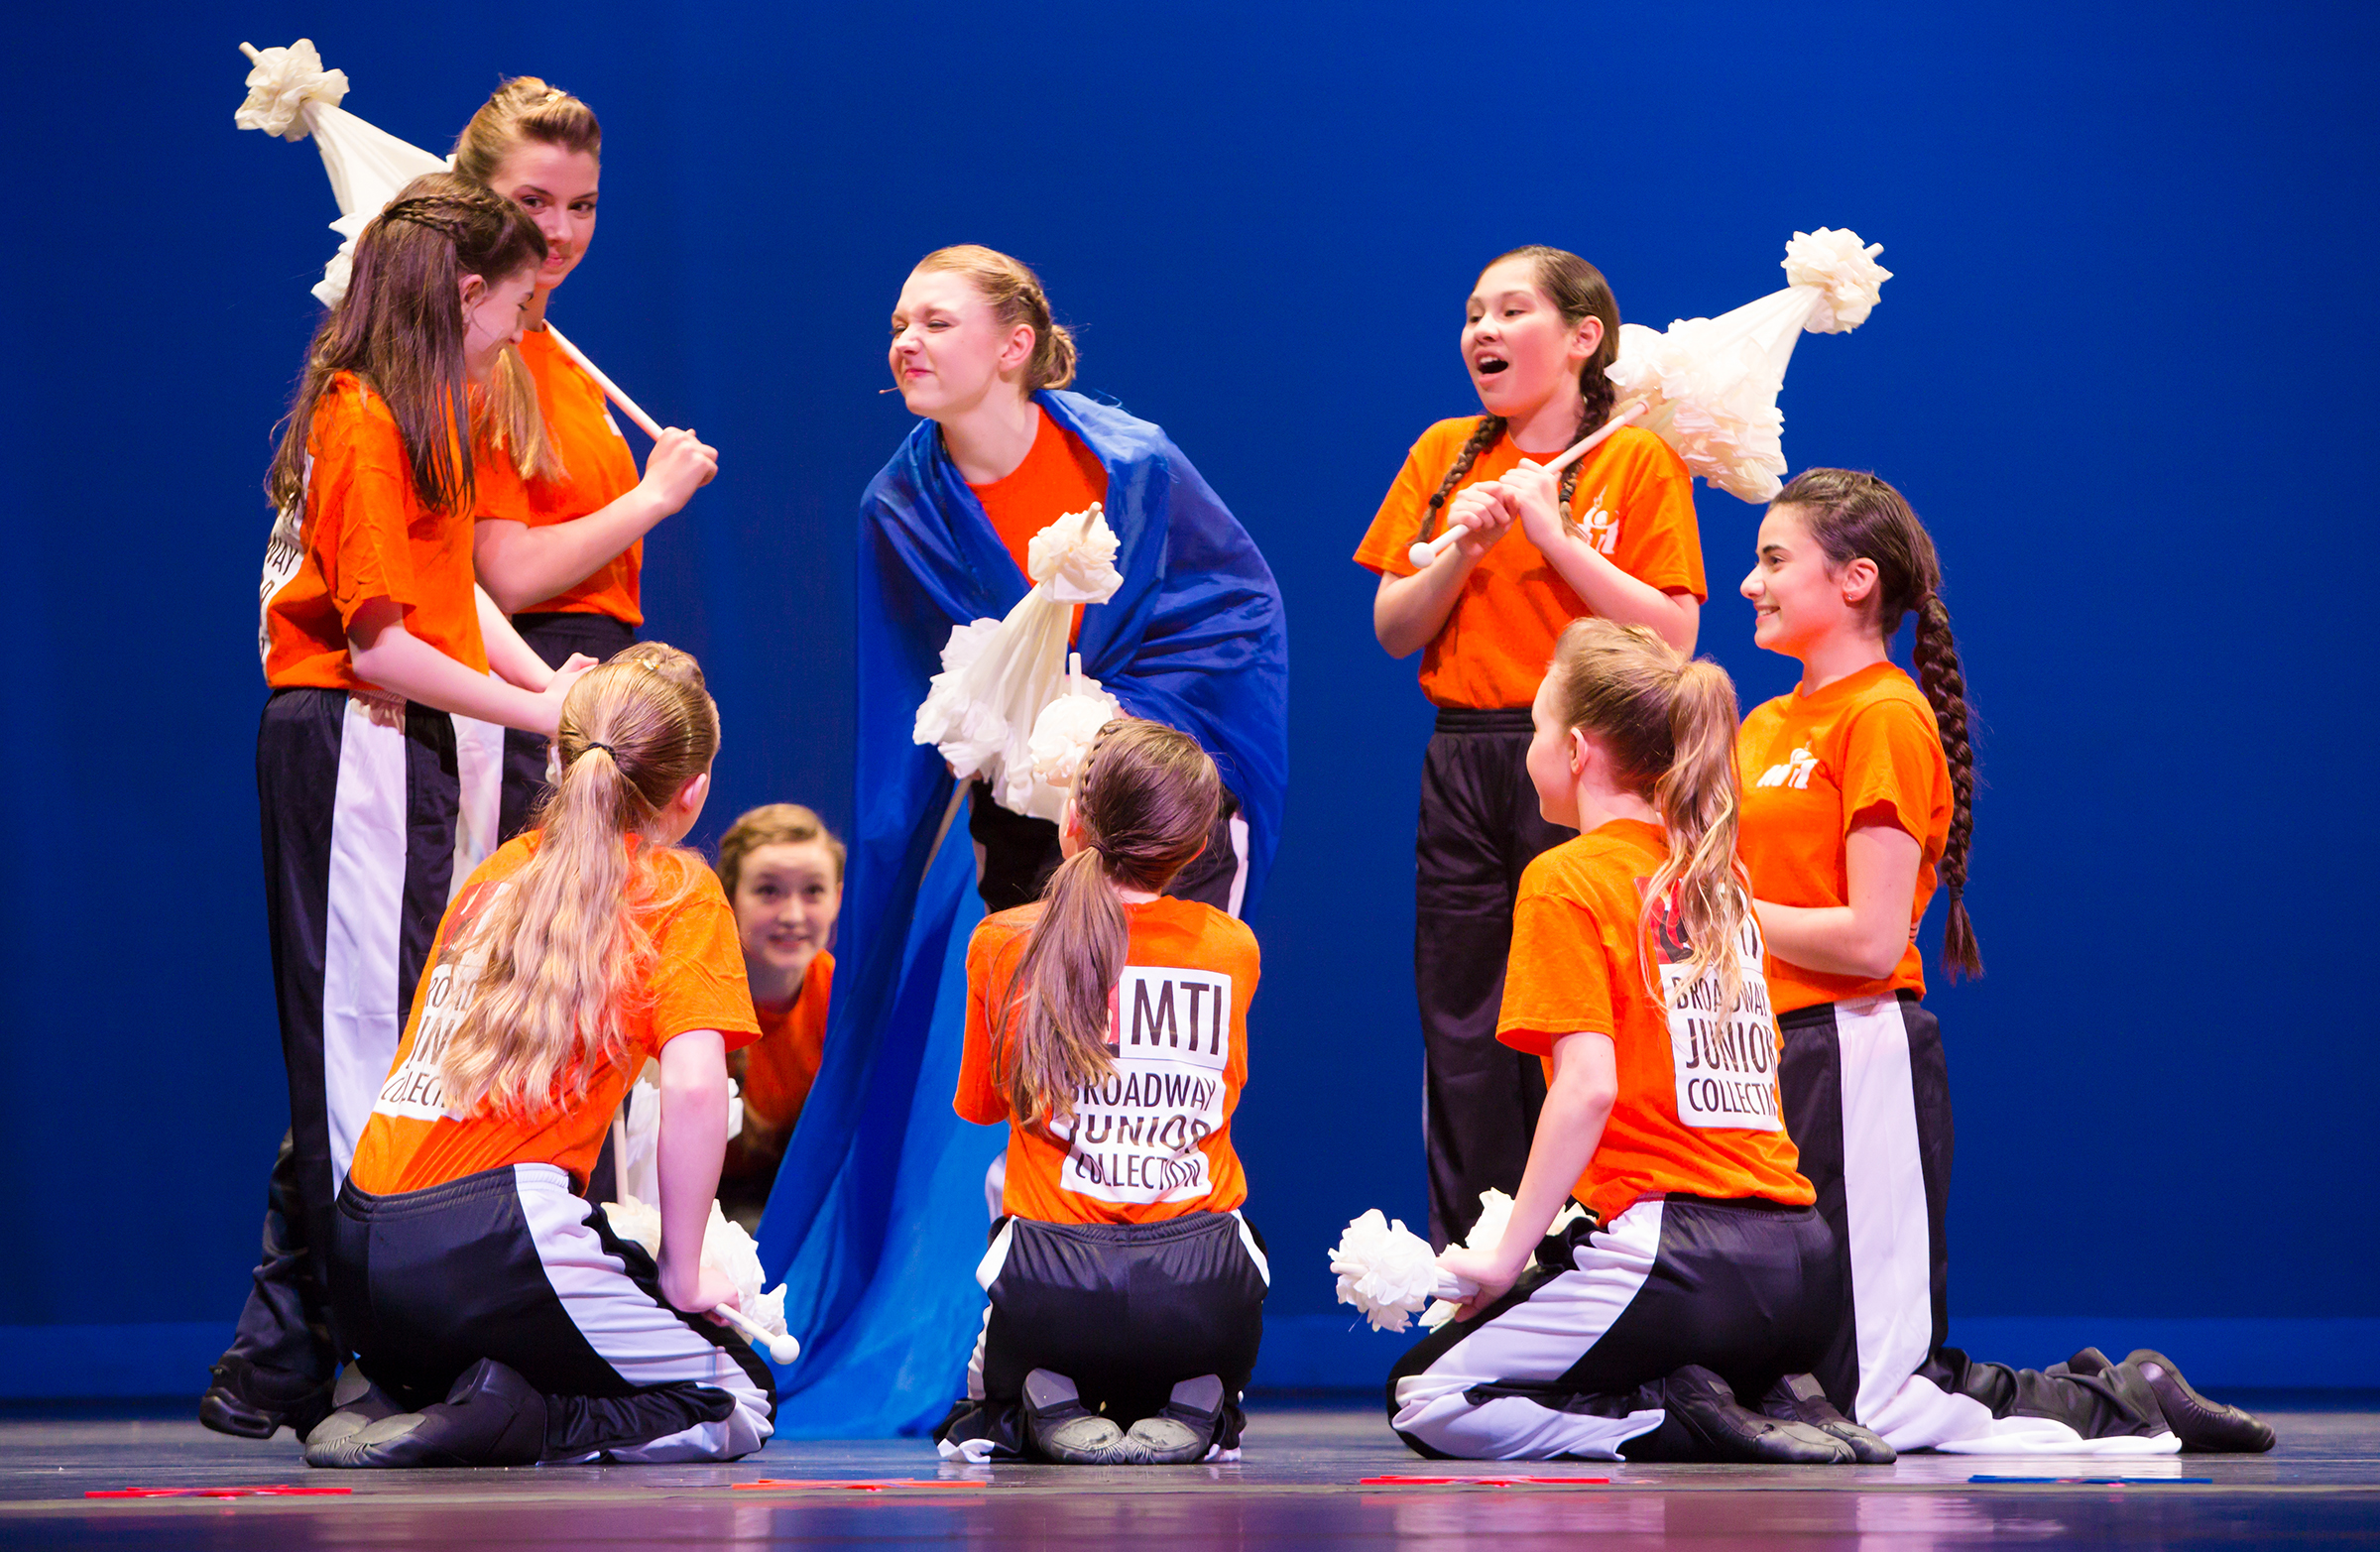 BWW Interviews: Steven G. Kennedy and Humphreys School of Musical Theatre Students Talk iTheatrics DVDs